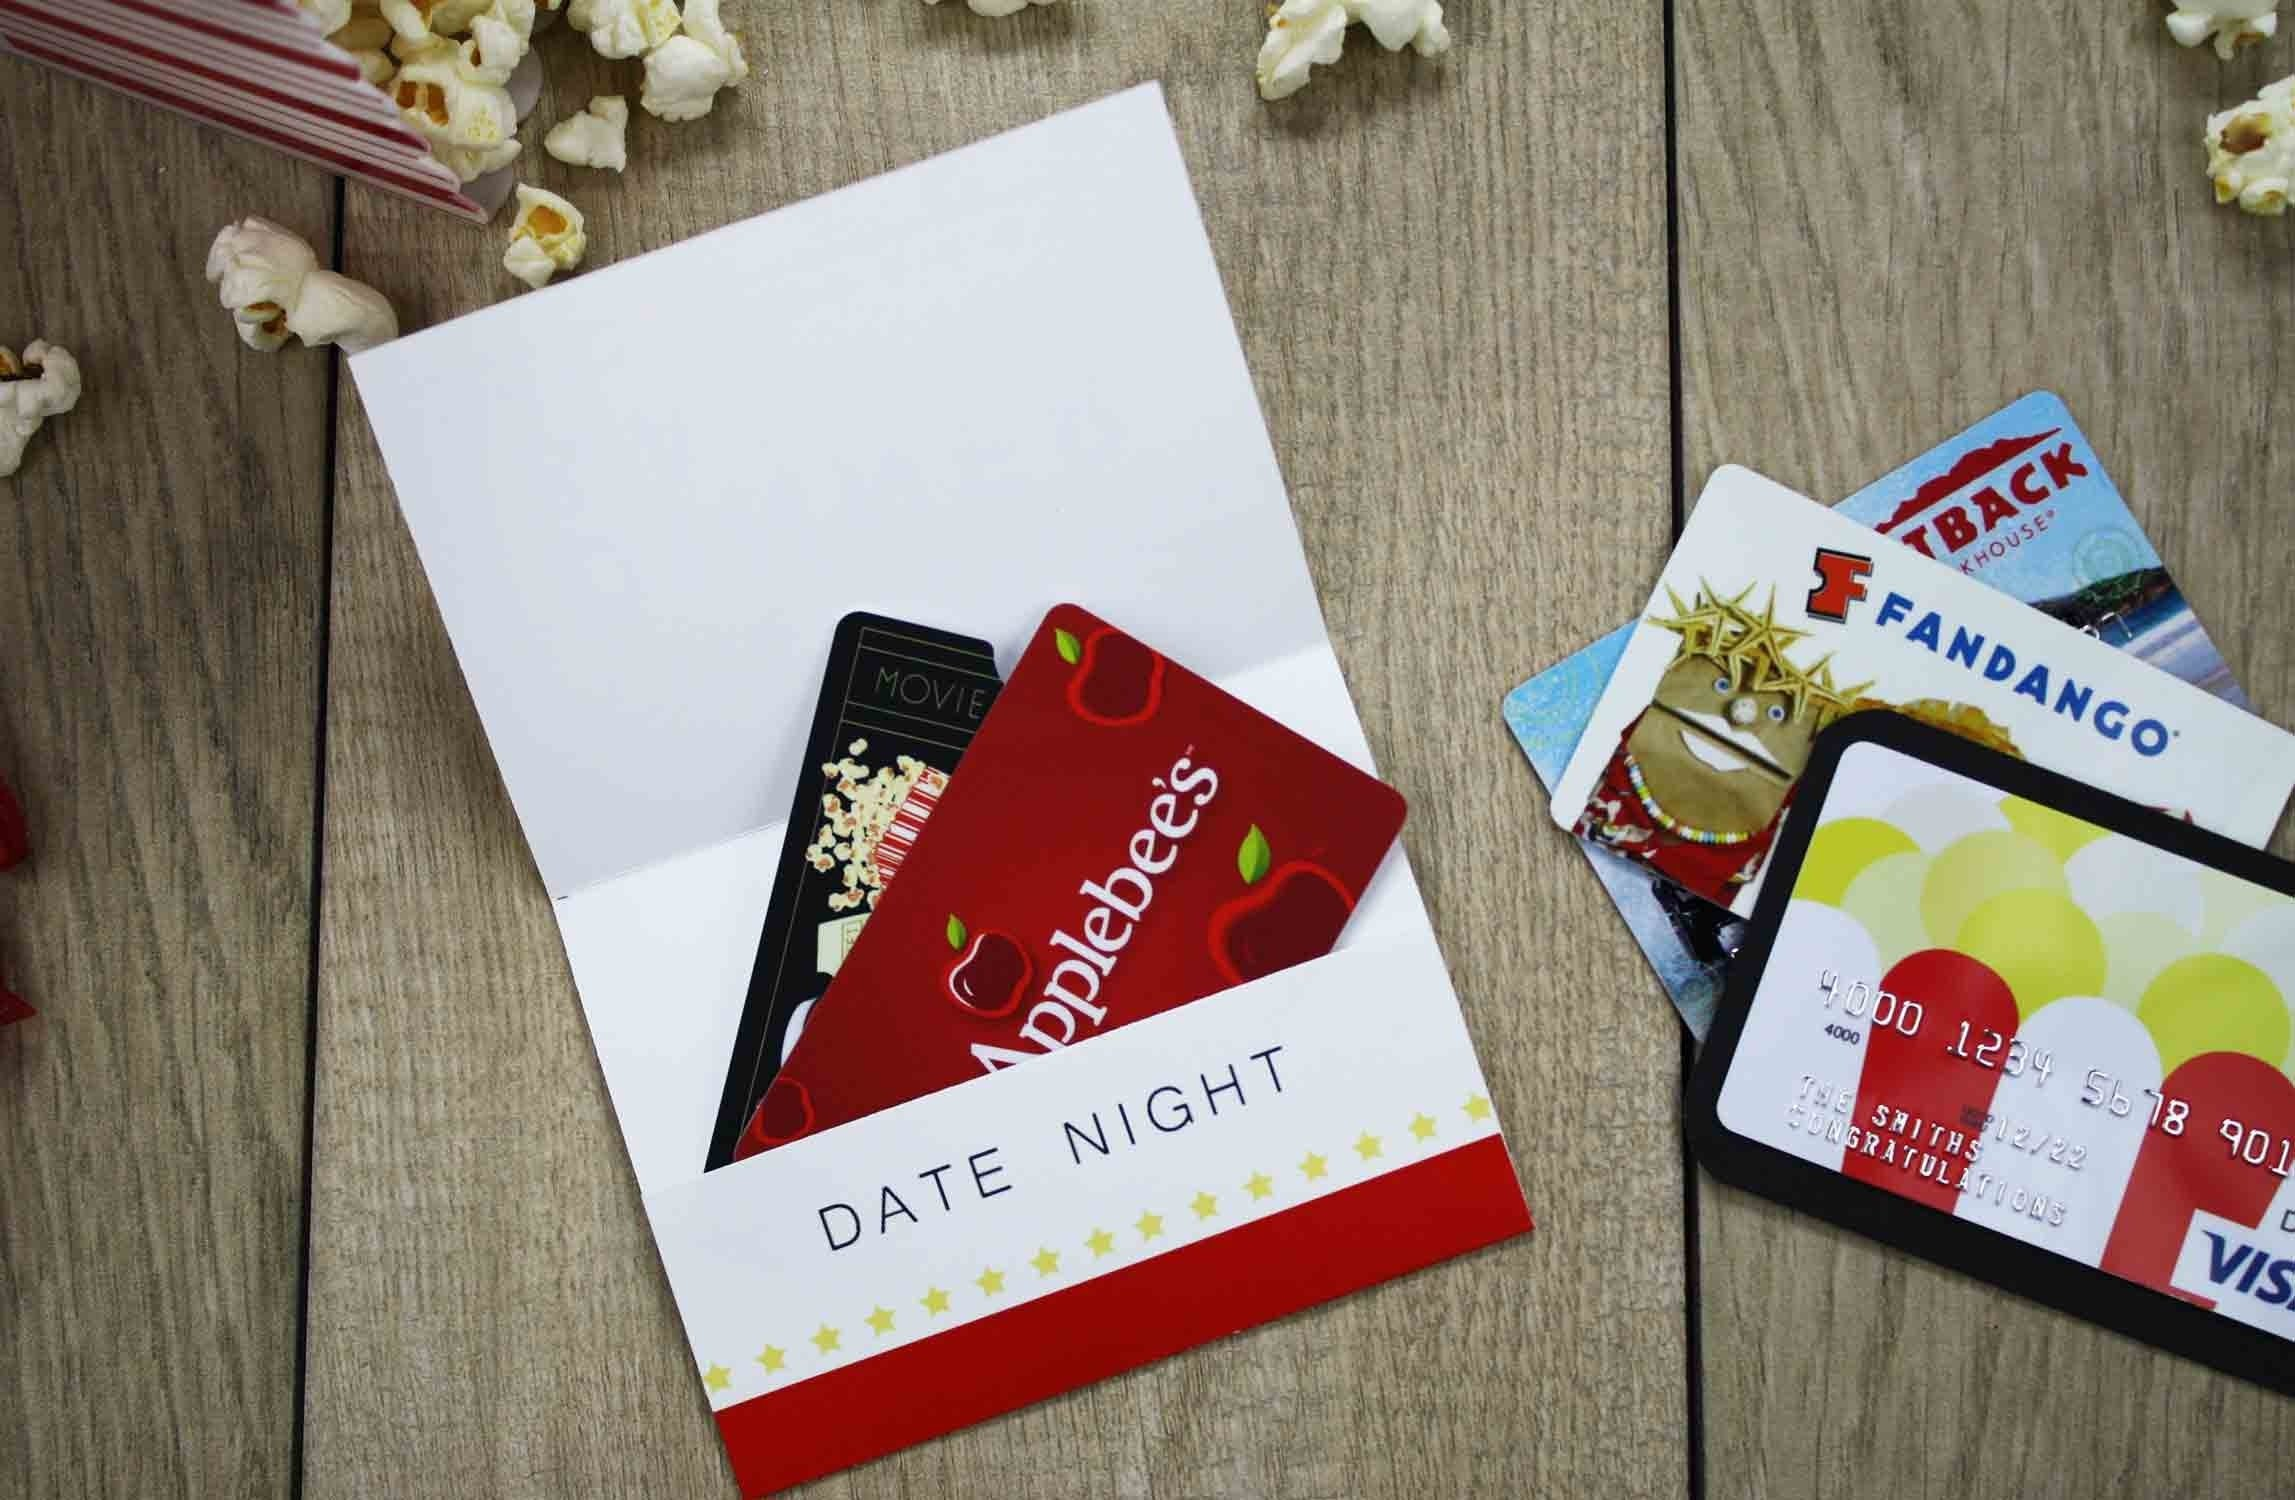 10 Stunning Gift Card Ideas For Couples free printable give date night for a wedding gift gcg 3 2021